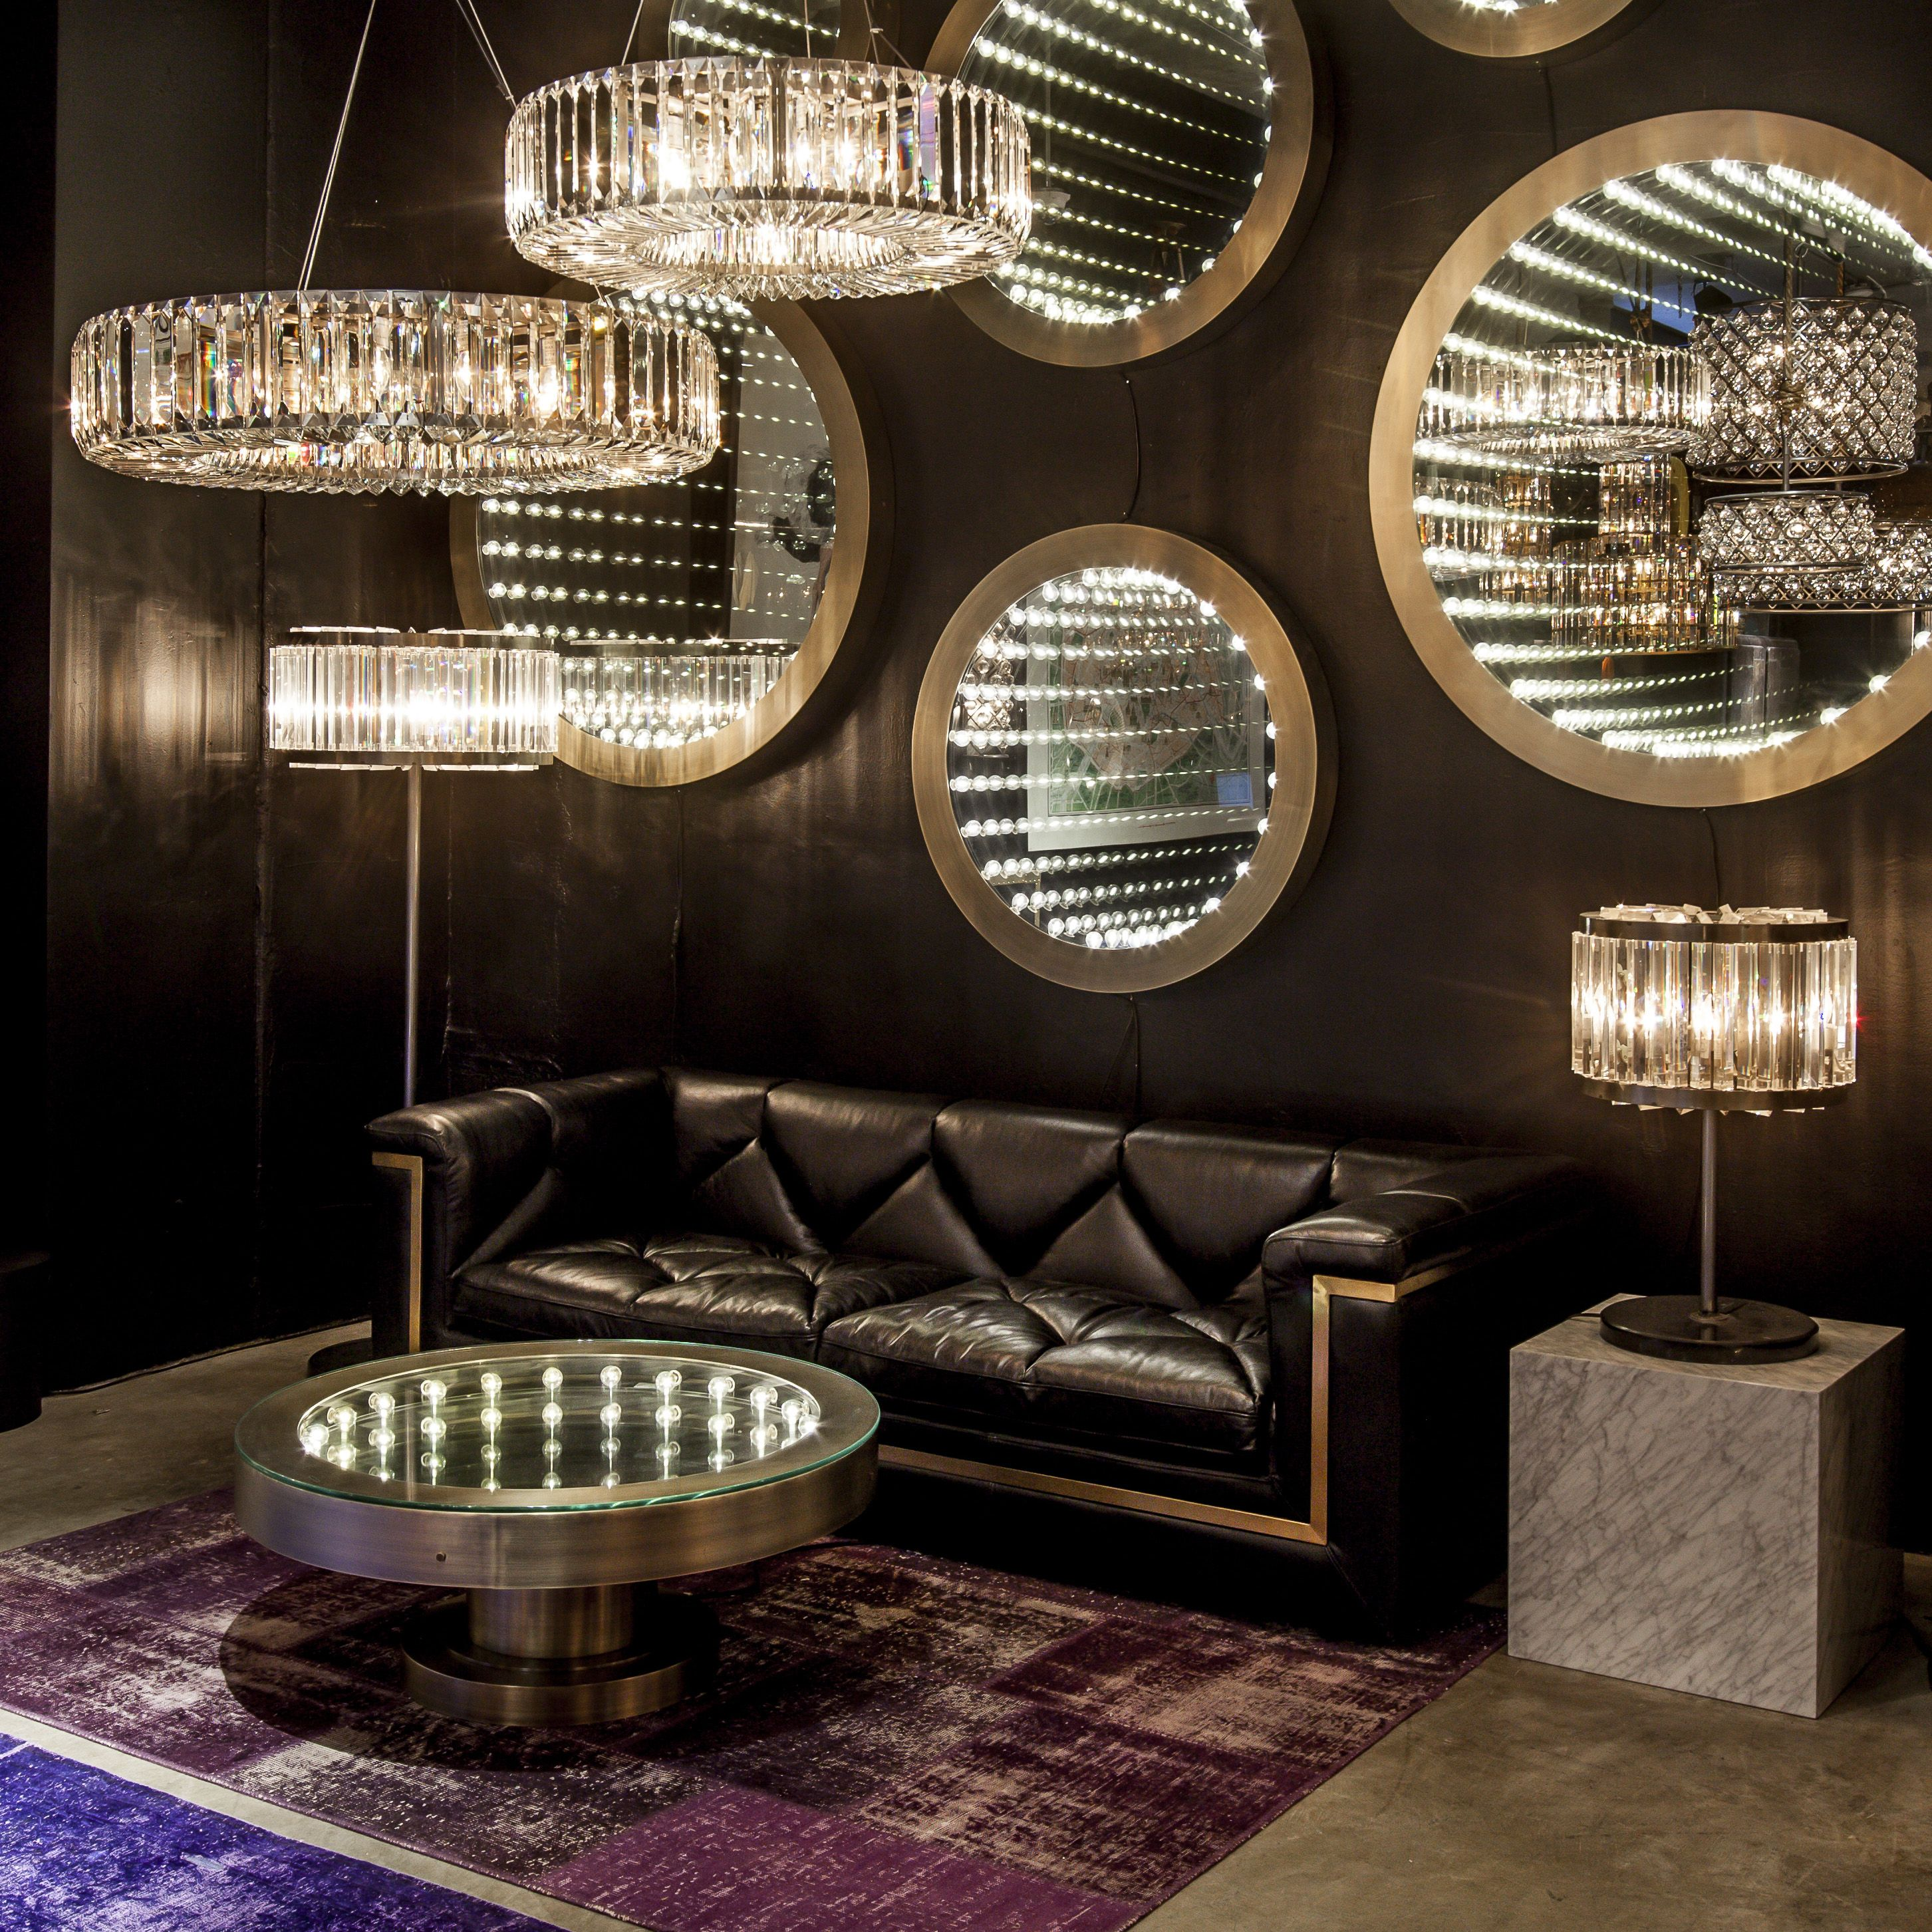 Recapturing The Romance Of Light Inception Coffee Table And Mirror Collection Excites Eye Embracing A Touch Theatrics